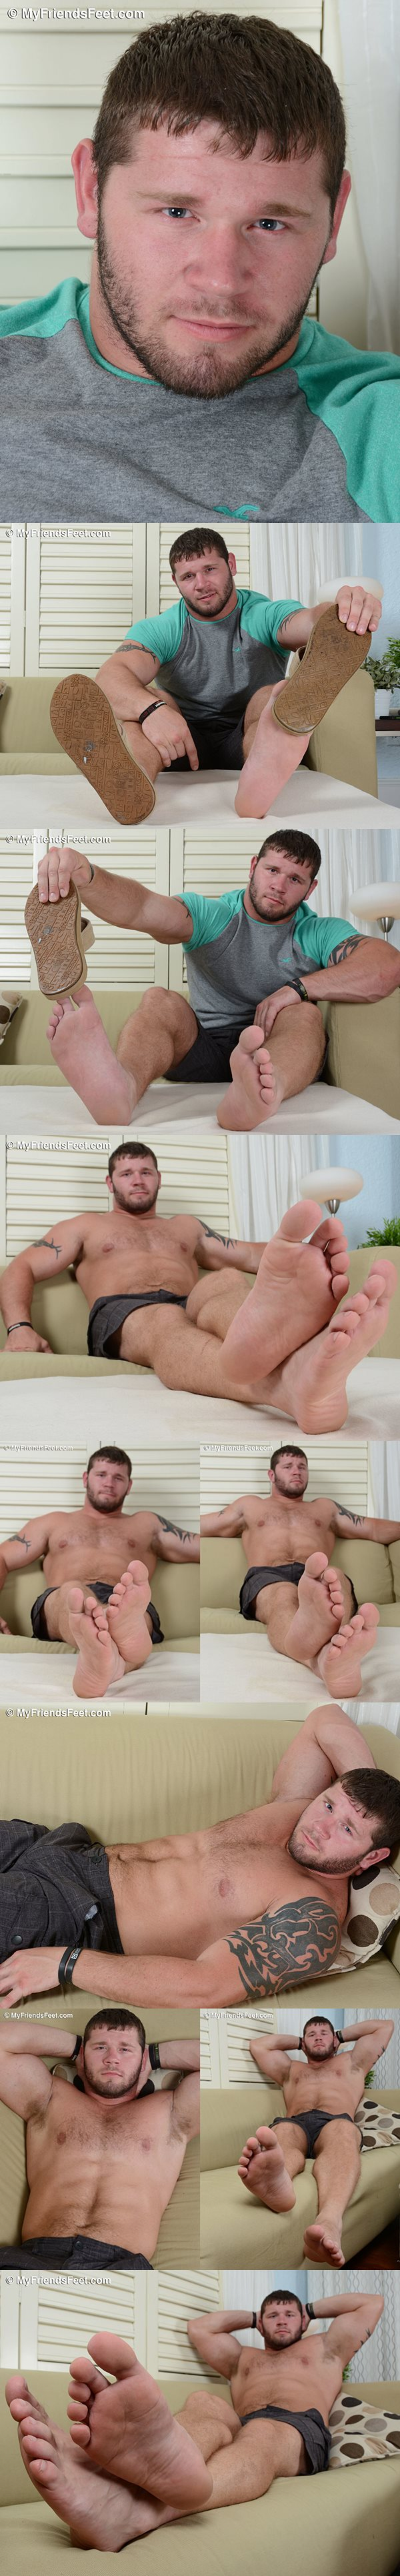 College football player Michael's masculine size 12 feet at Myfriendsfeet